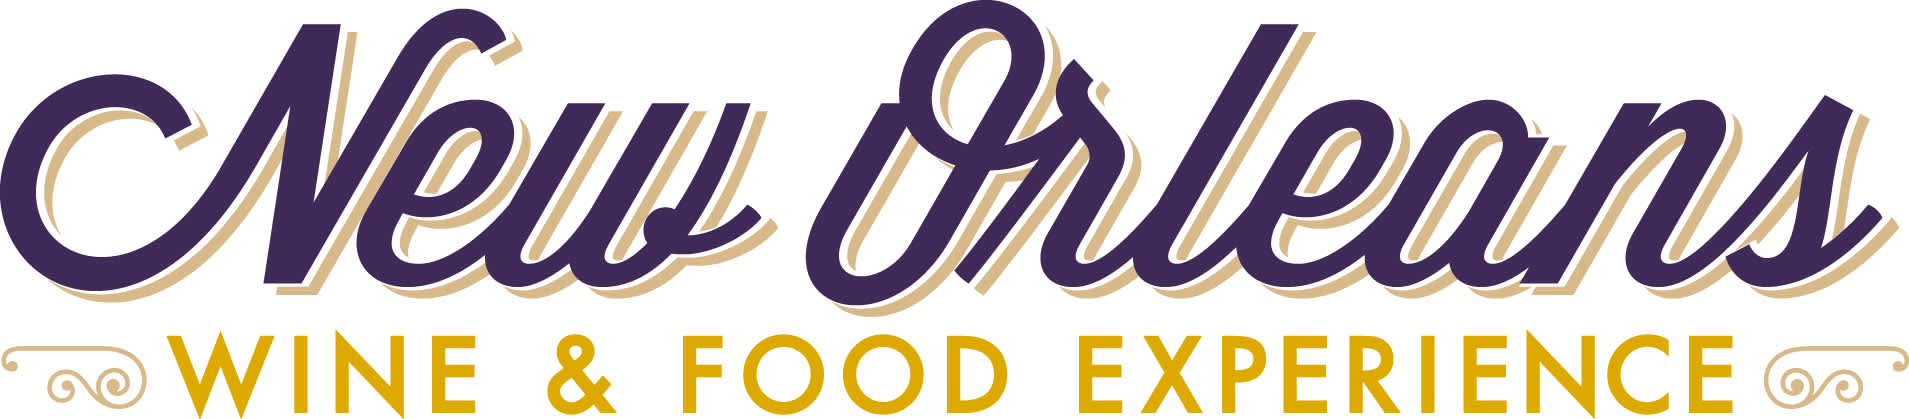 New Orleans Wine and Food Experience Logo